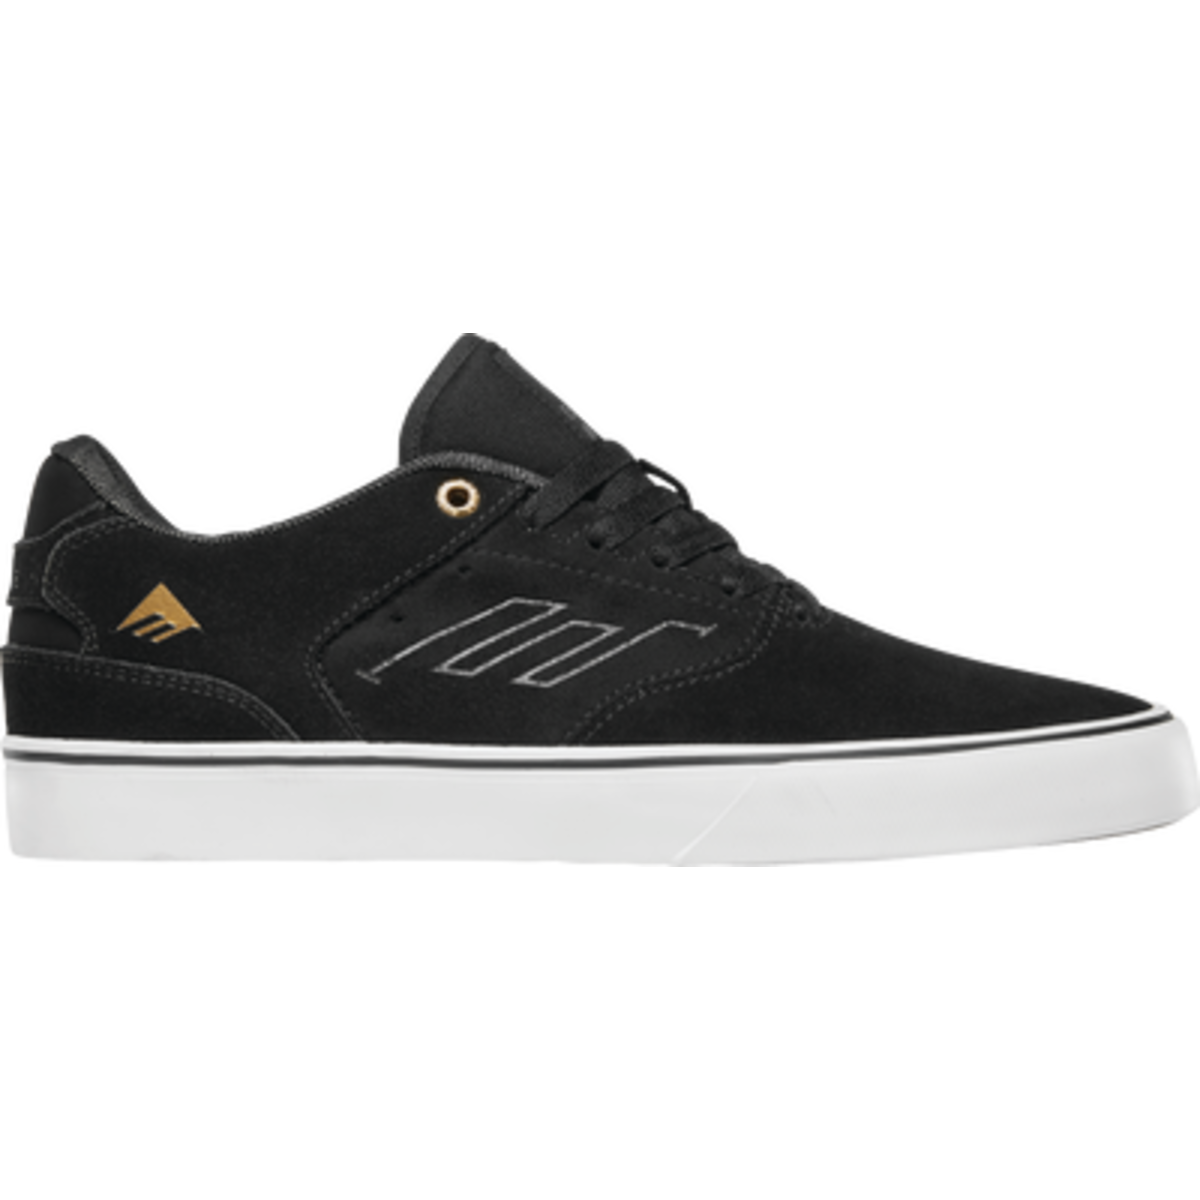 EMERICA THE LOW VULC BLKGOLWHI